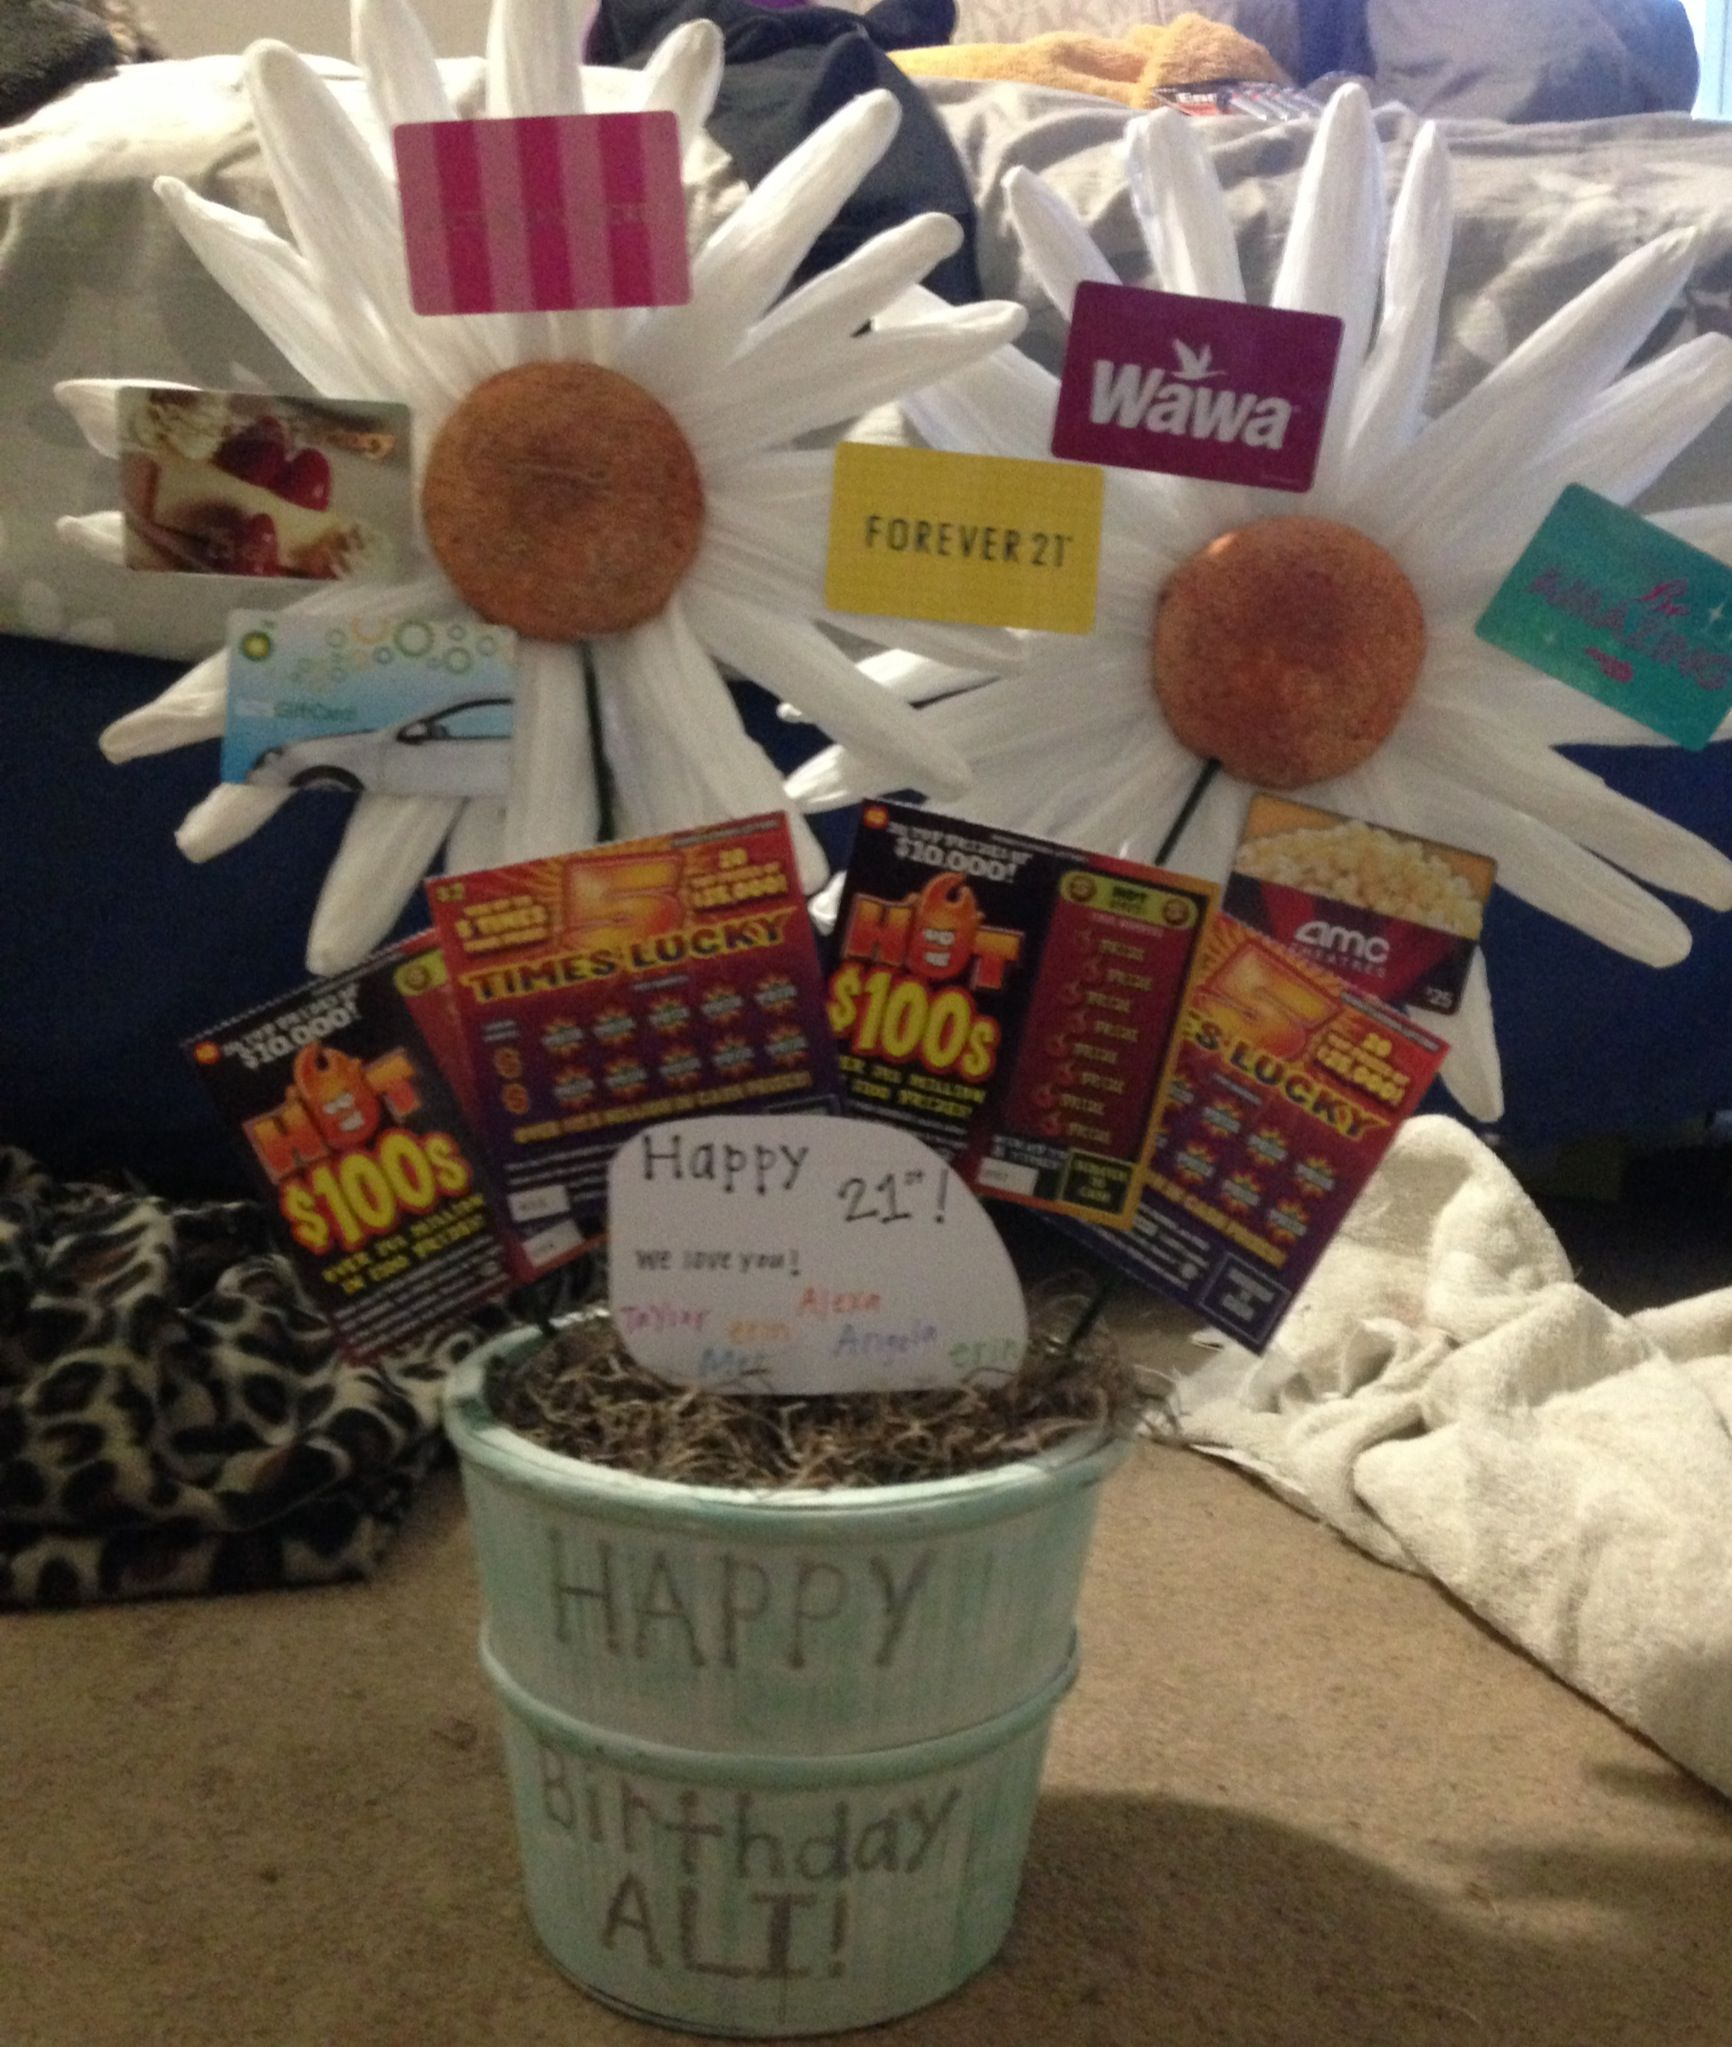 Gift card tree ideas pinterest - Made It All By Myself Birthday Gift Idea Gift Card Tree